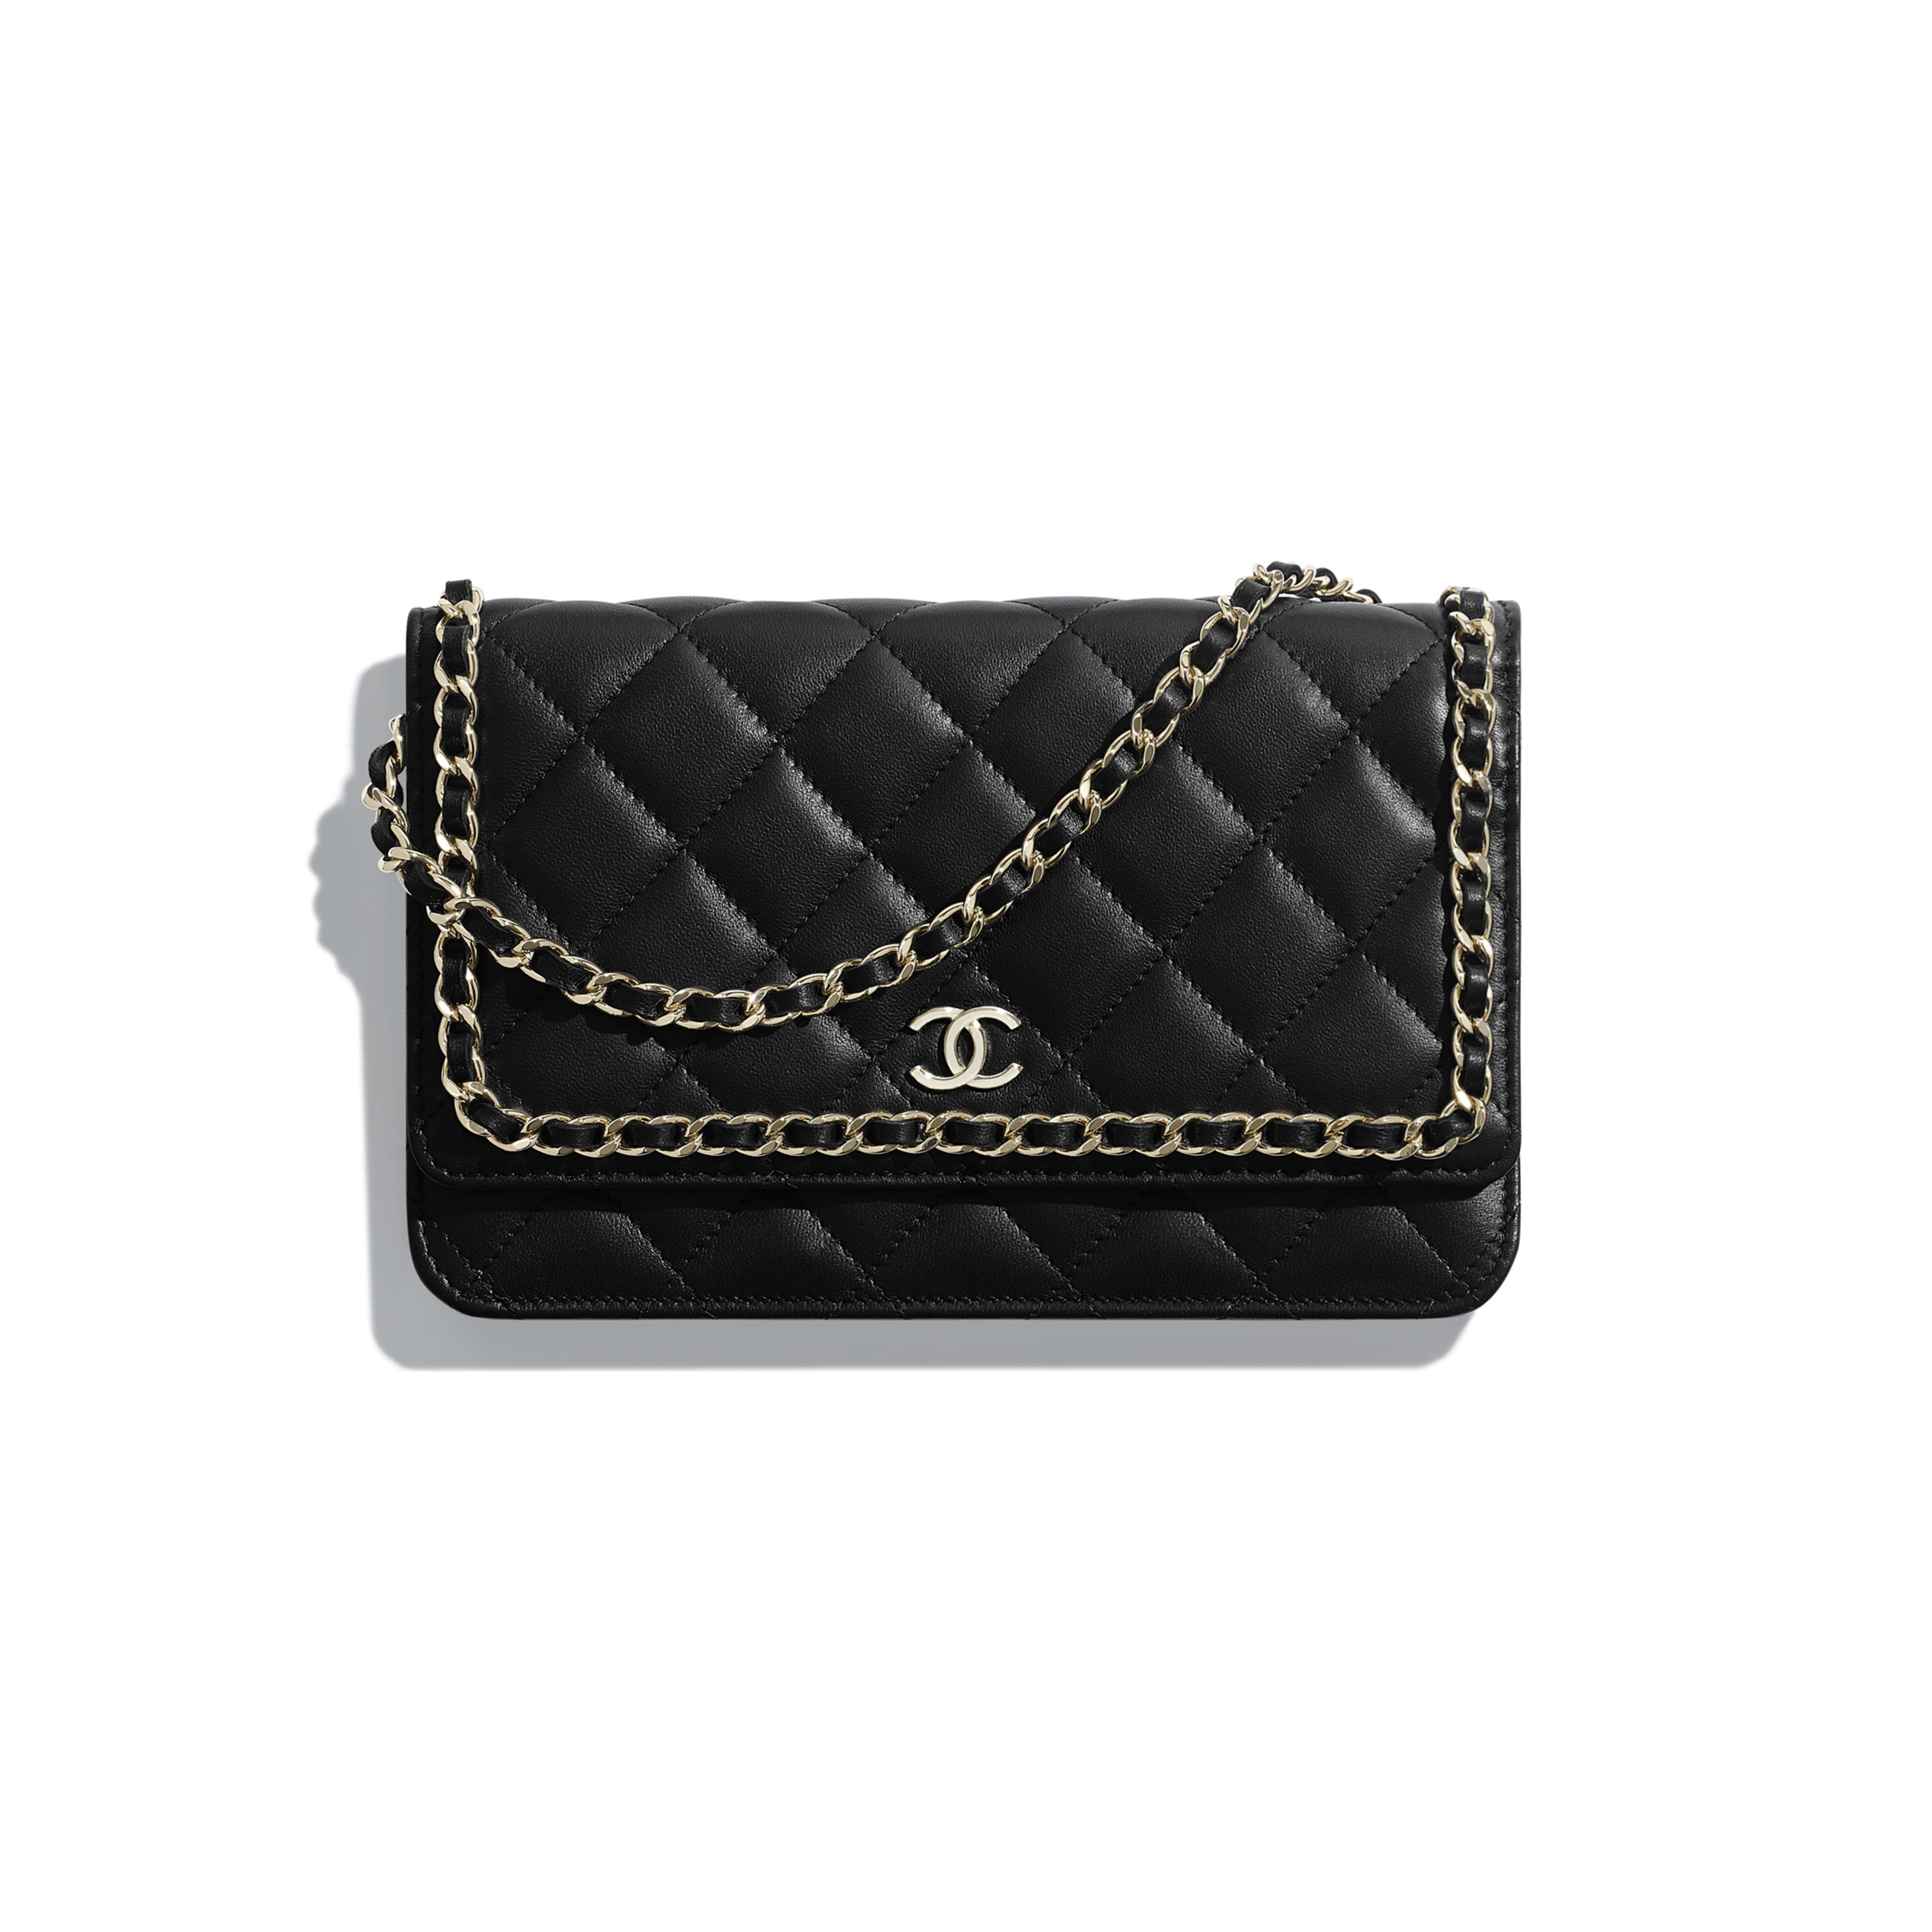 Wallet on Chain - Black - Lambskin, Chains & Gold-Tone Metal - Default view - see full sized version